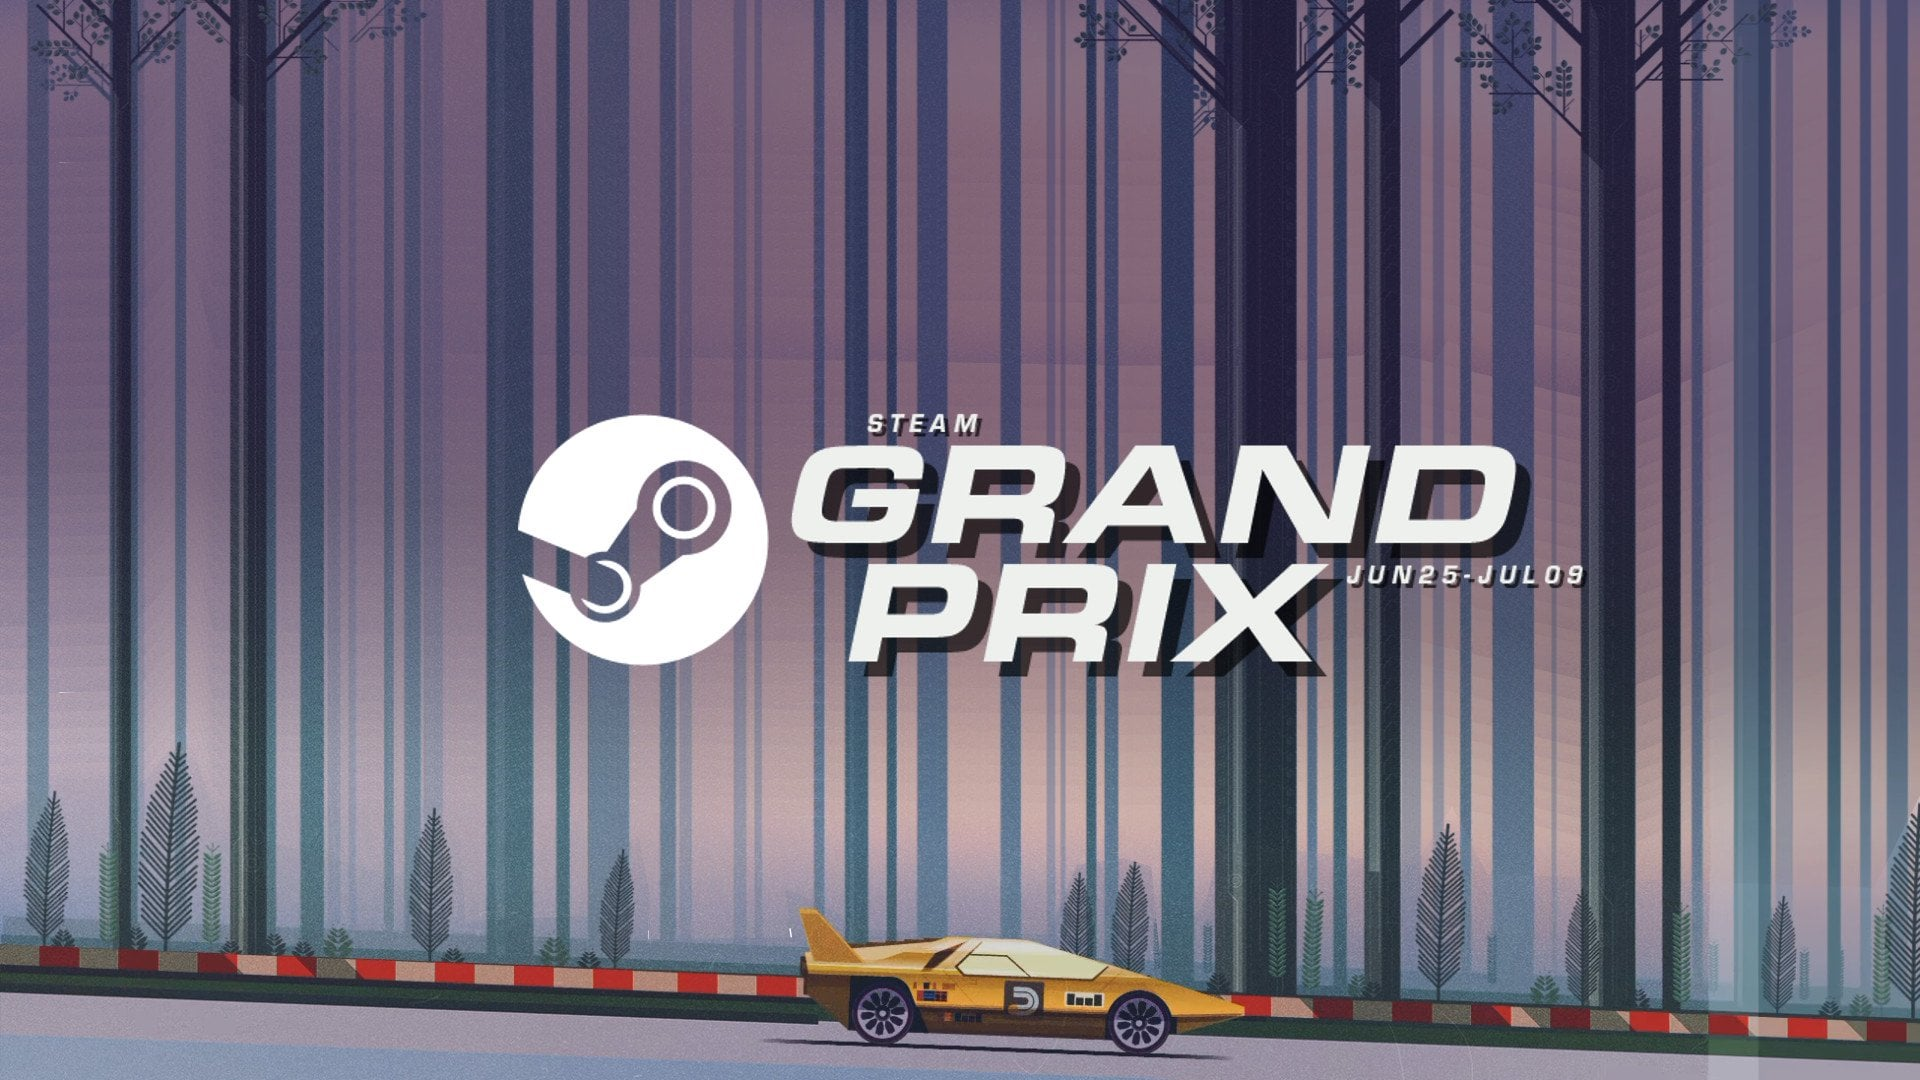 Steam-Grand-Prix